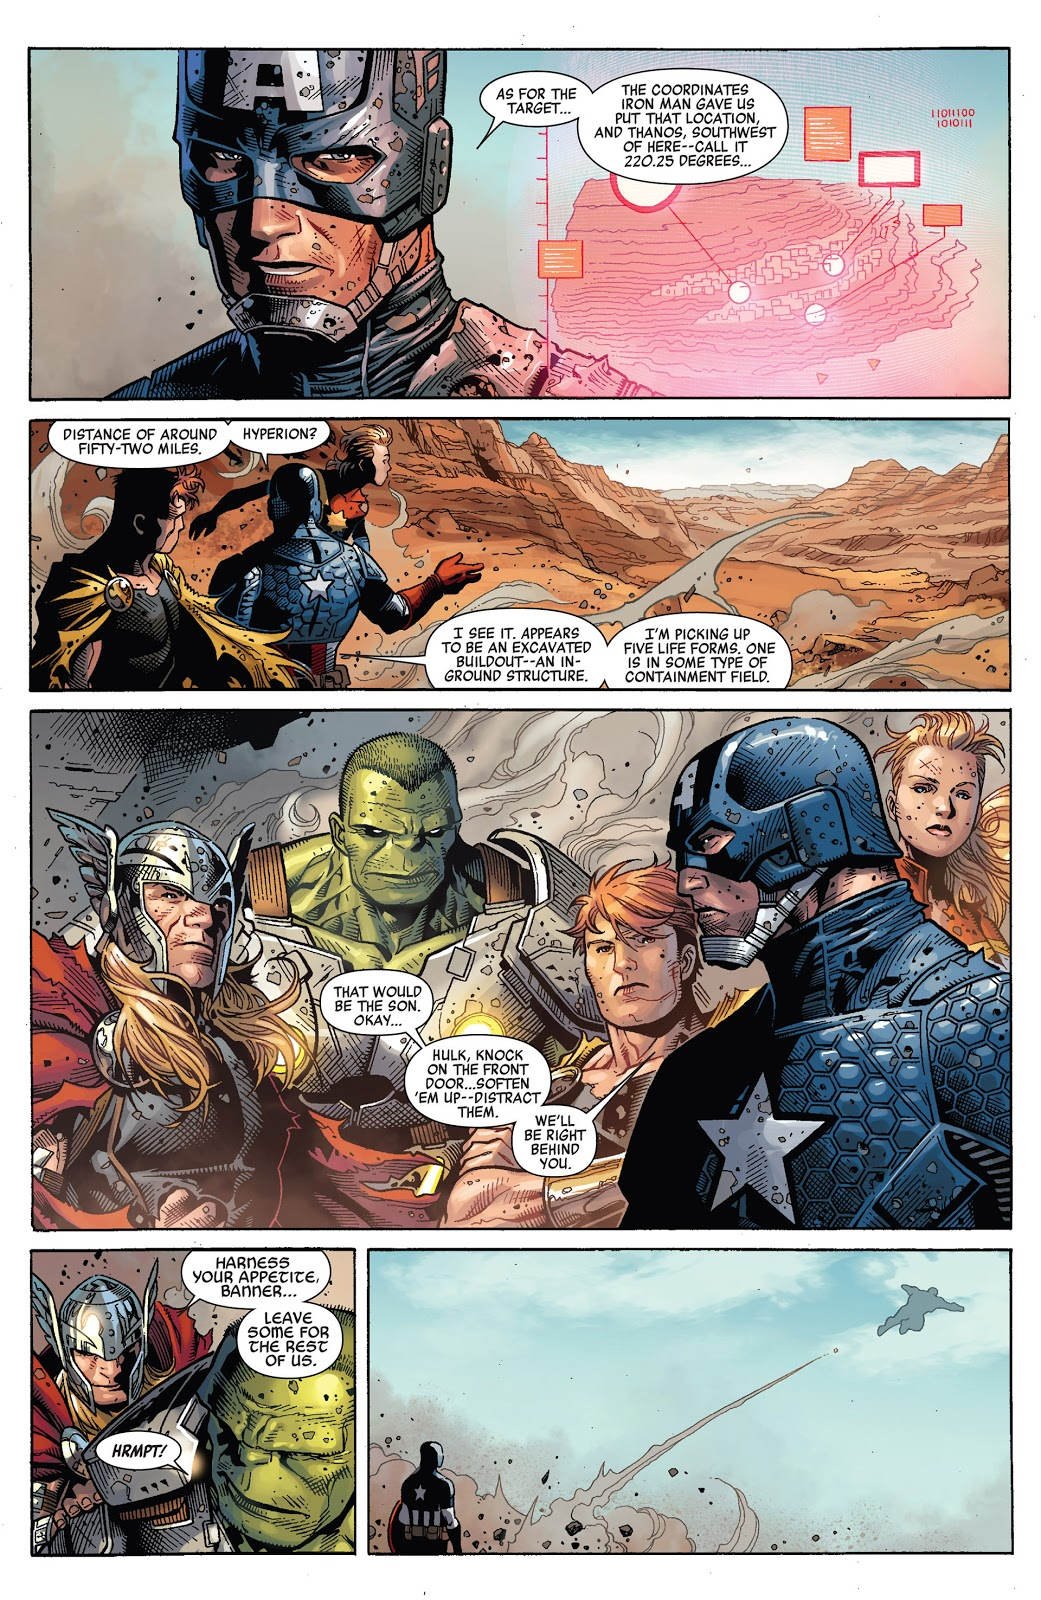 In 'Infinity' (2014) #6, Captain America and the Avengers scout the area in the Inhuman city of Orollan before launching the attack on Thanos.